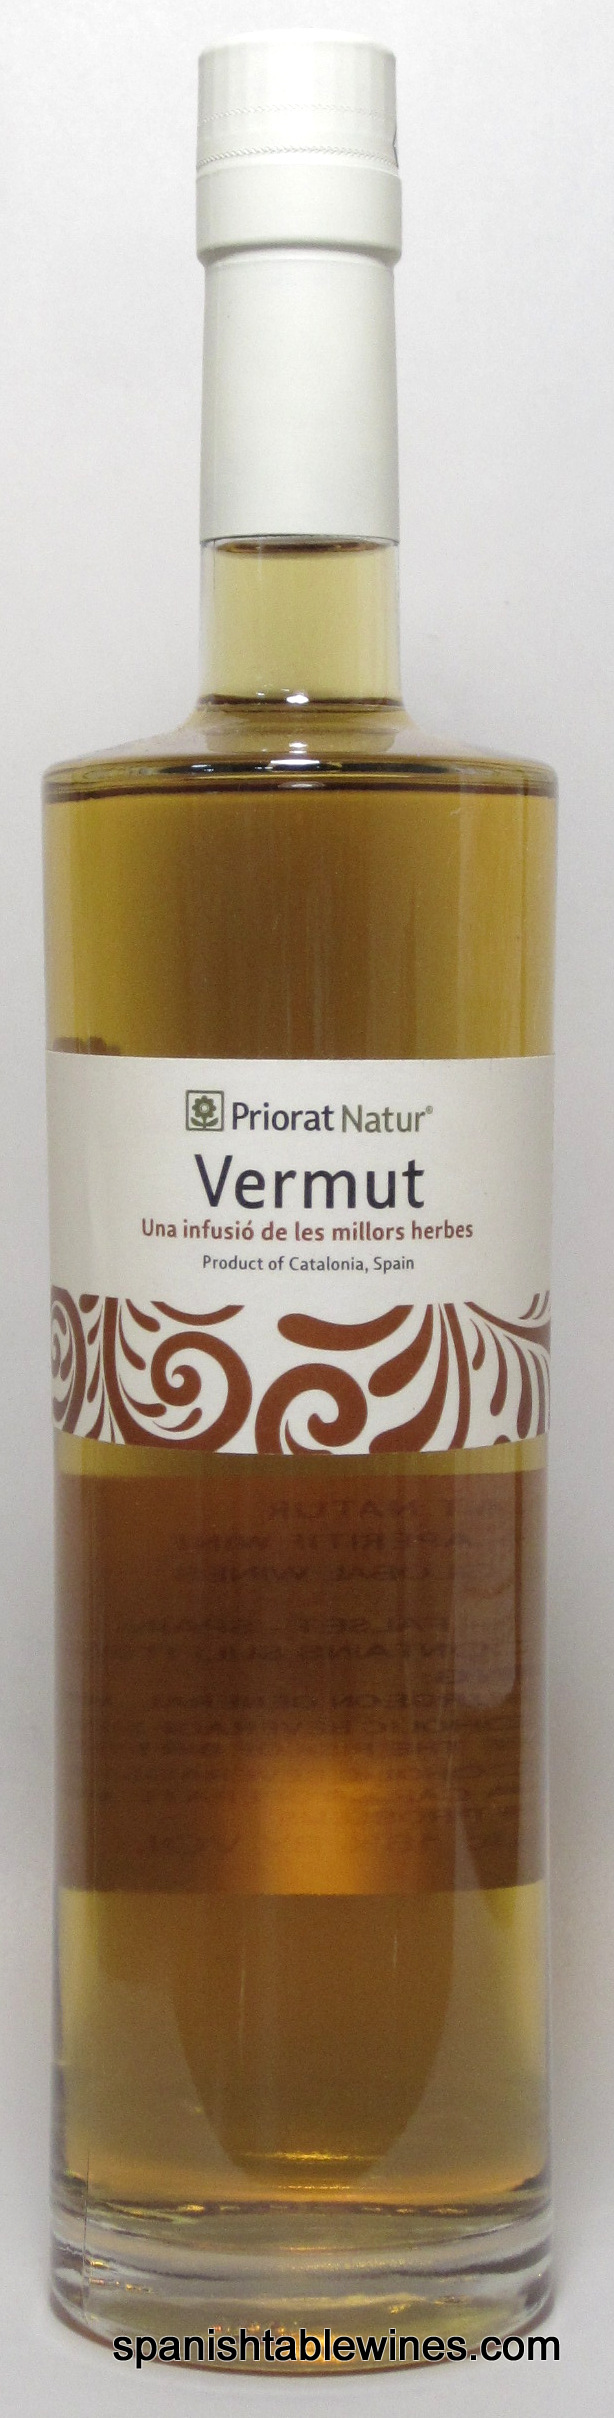 Buil & Gine Priorat Natur Vermut / Vermouth - Catalonia